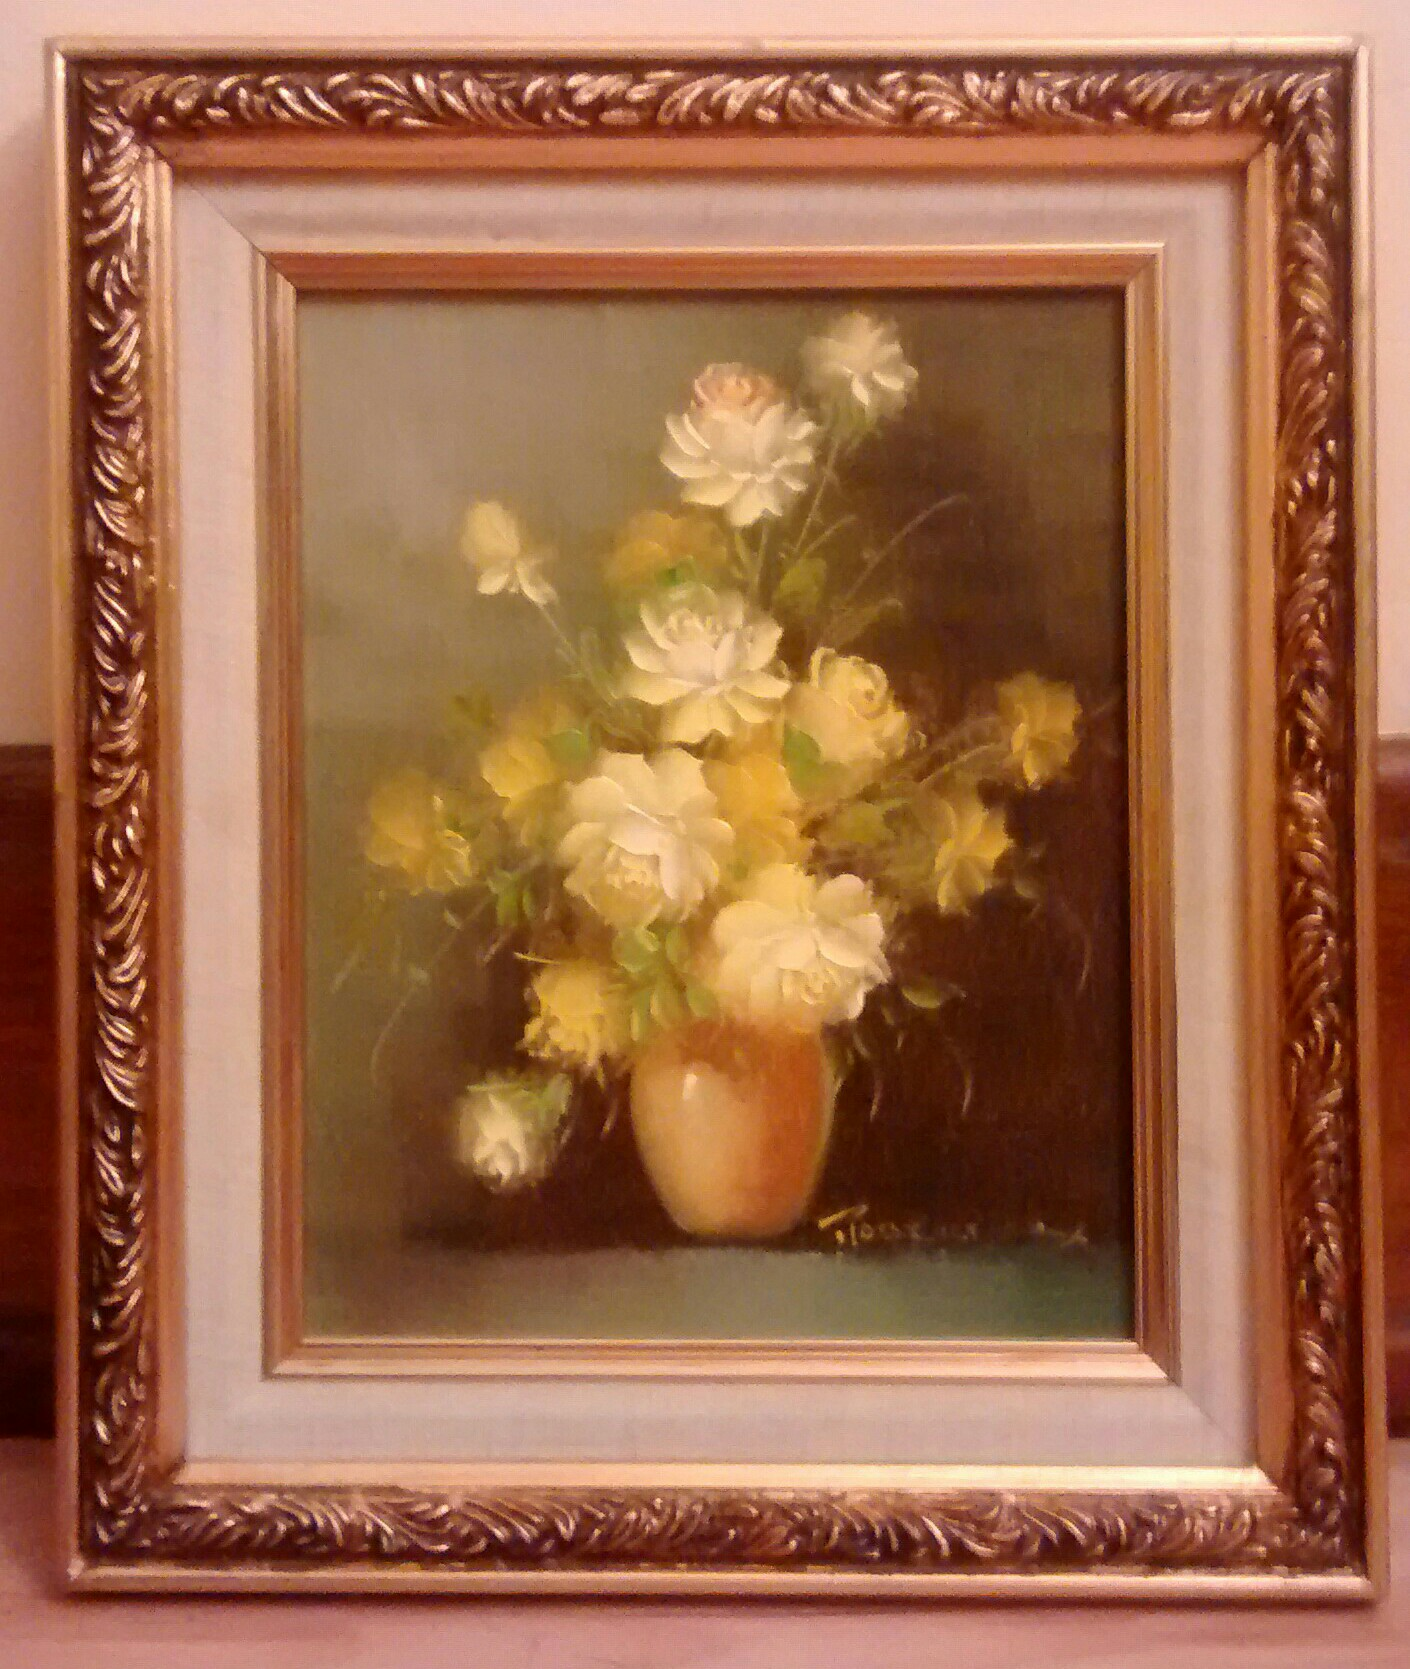 Original oil painting by robert cox for sale antiques for Original oil paintings for sale by artist